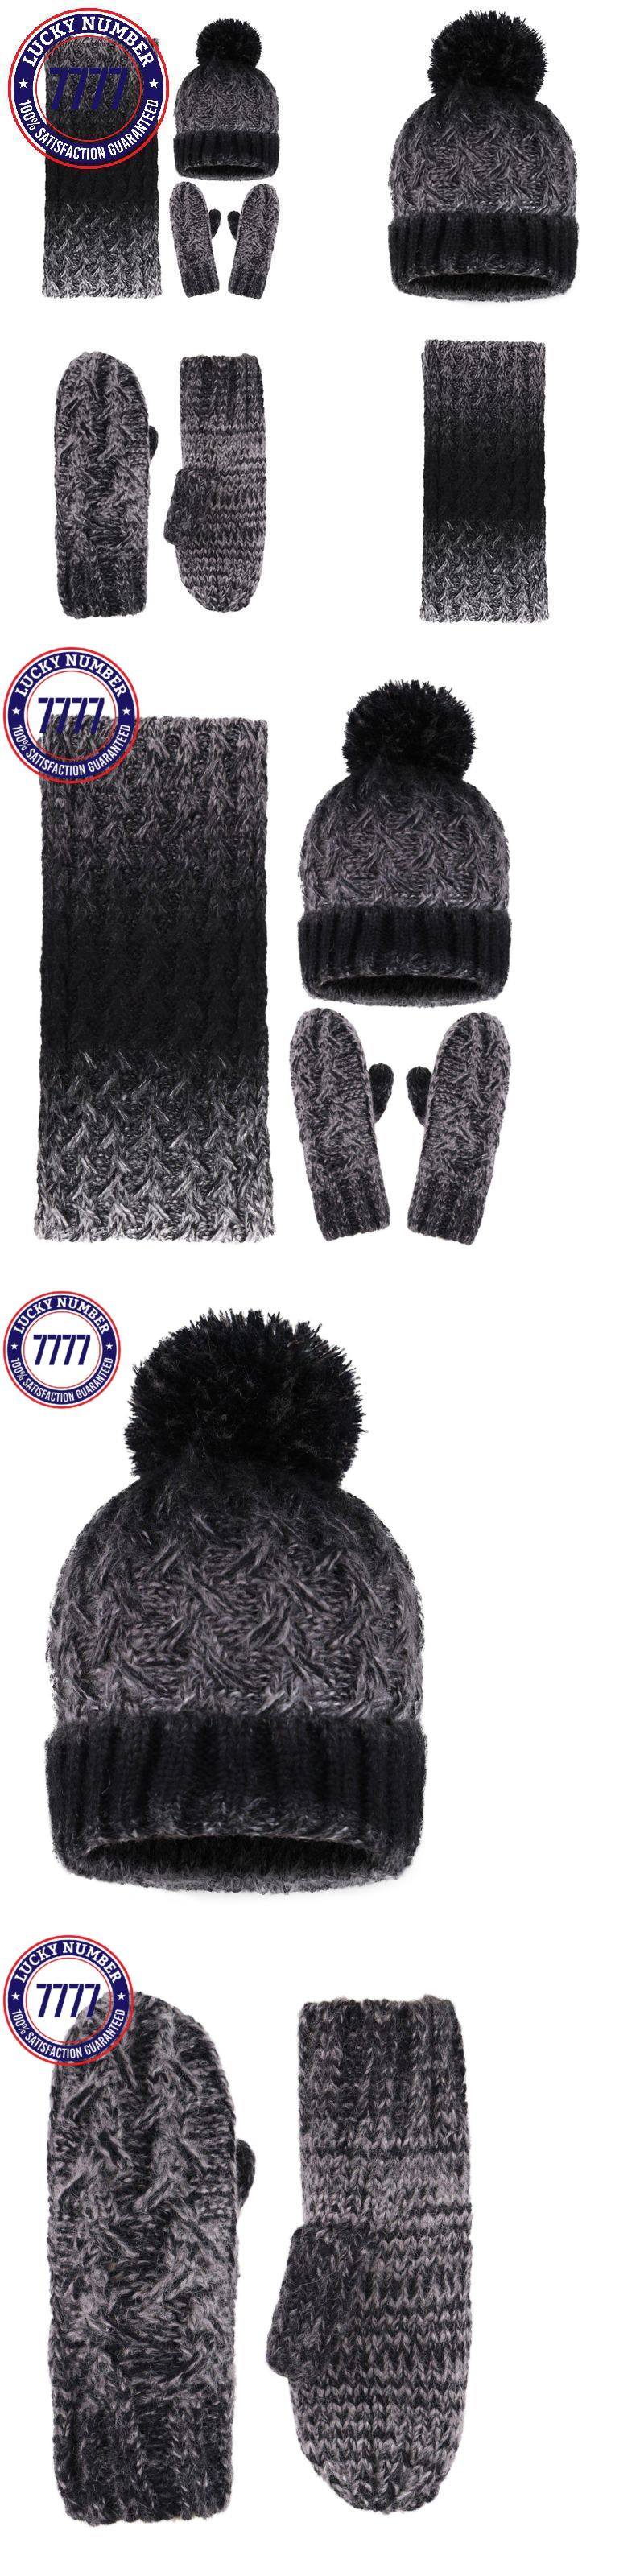 2af11536bcf Hats 15630  Arctic Paw Adult 3 Piece Winter Bundle - Beanie Scarf And Mitten  Set